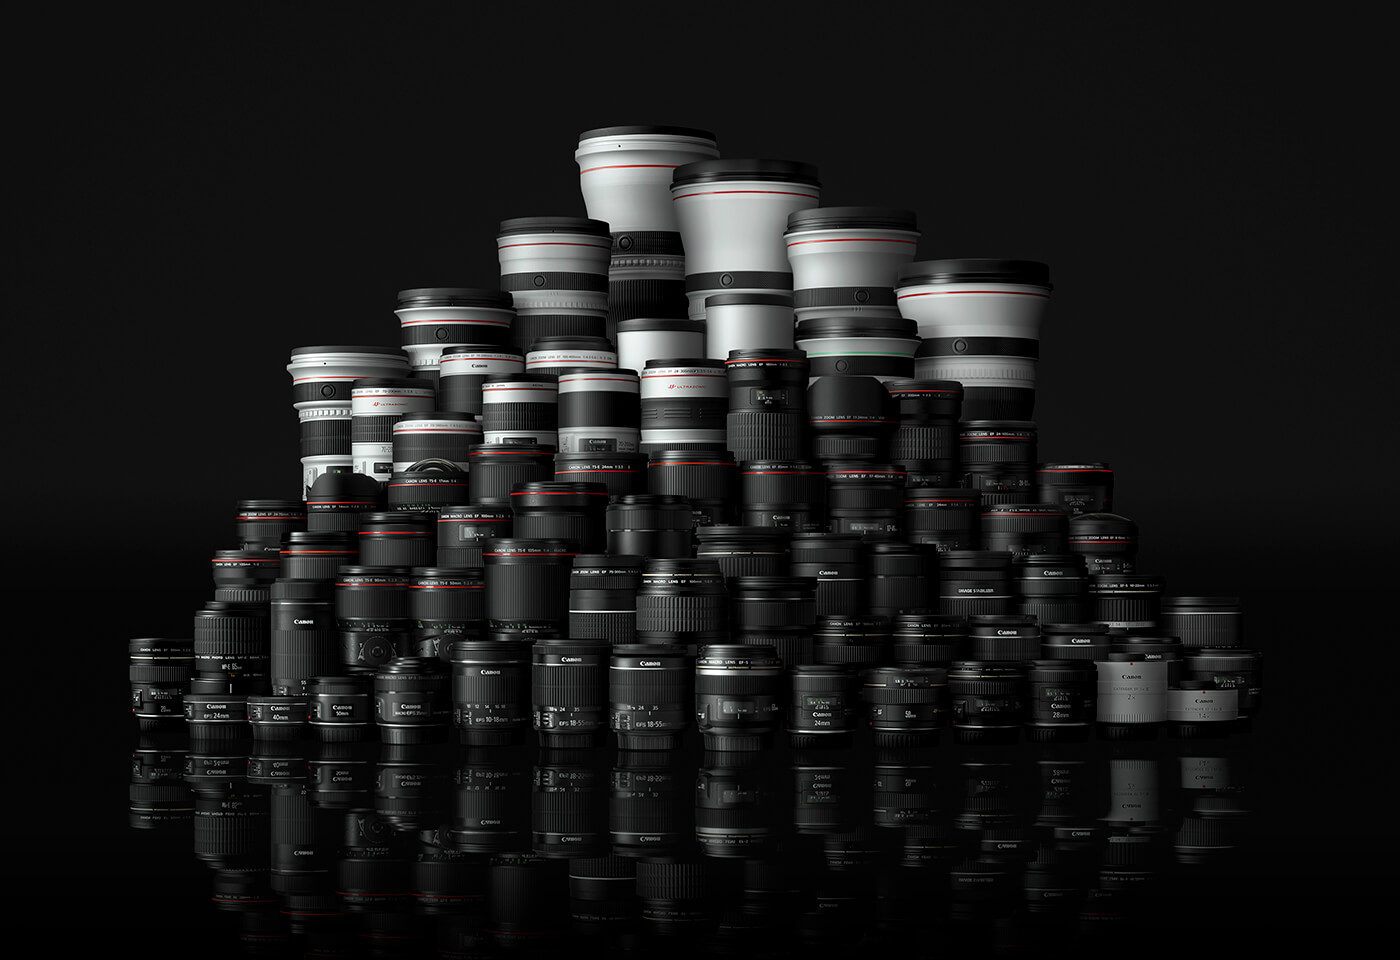 Family of Canon EOS lenses